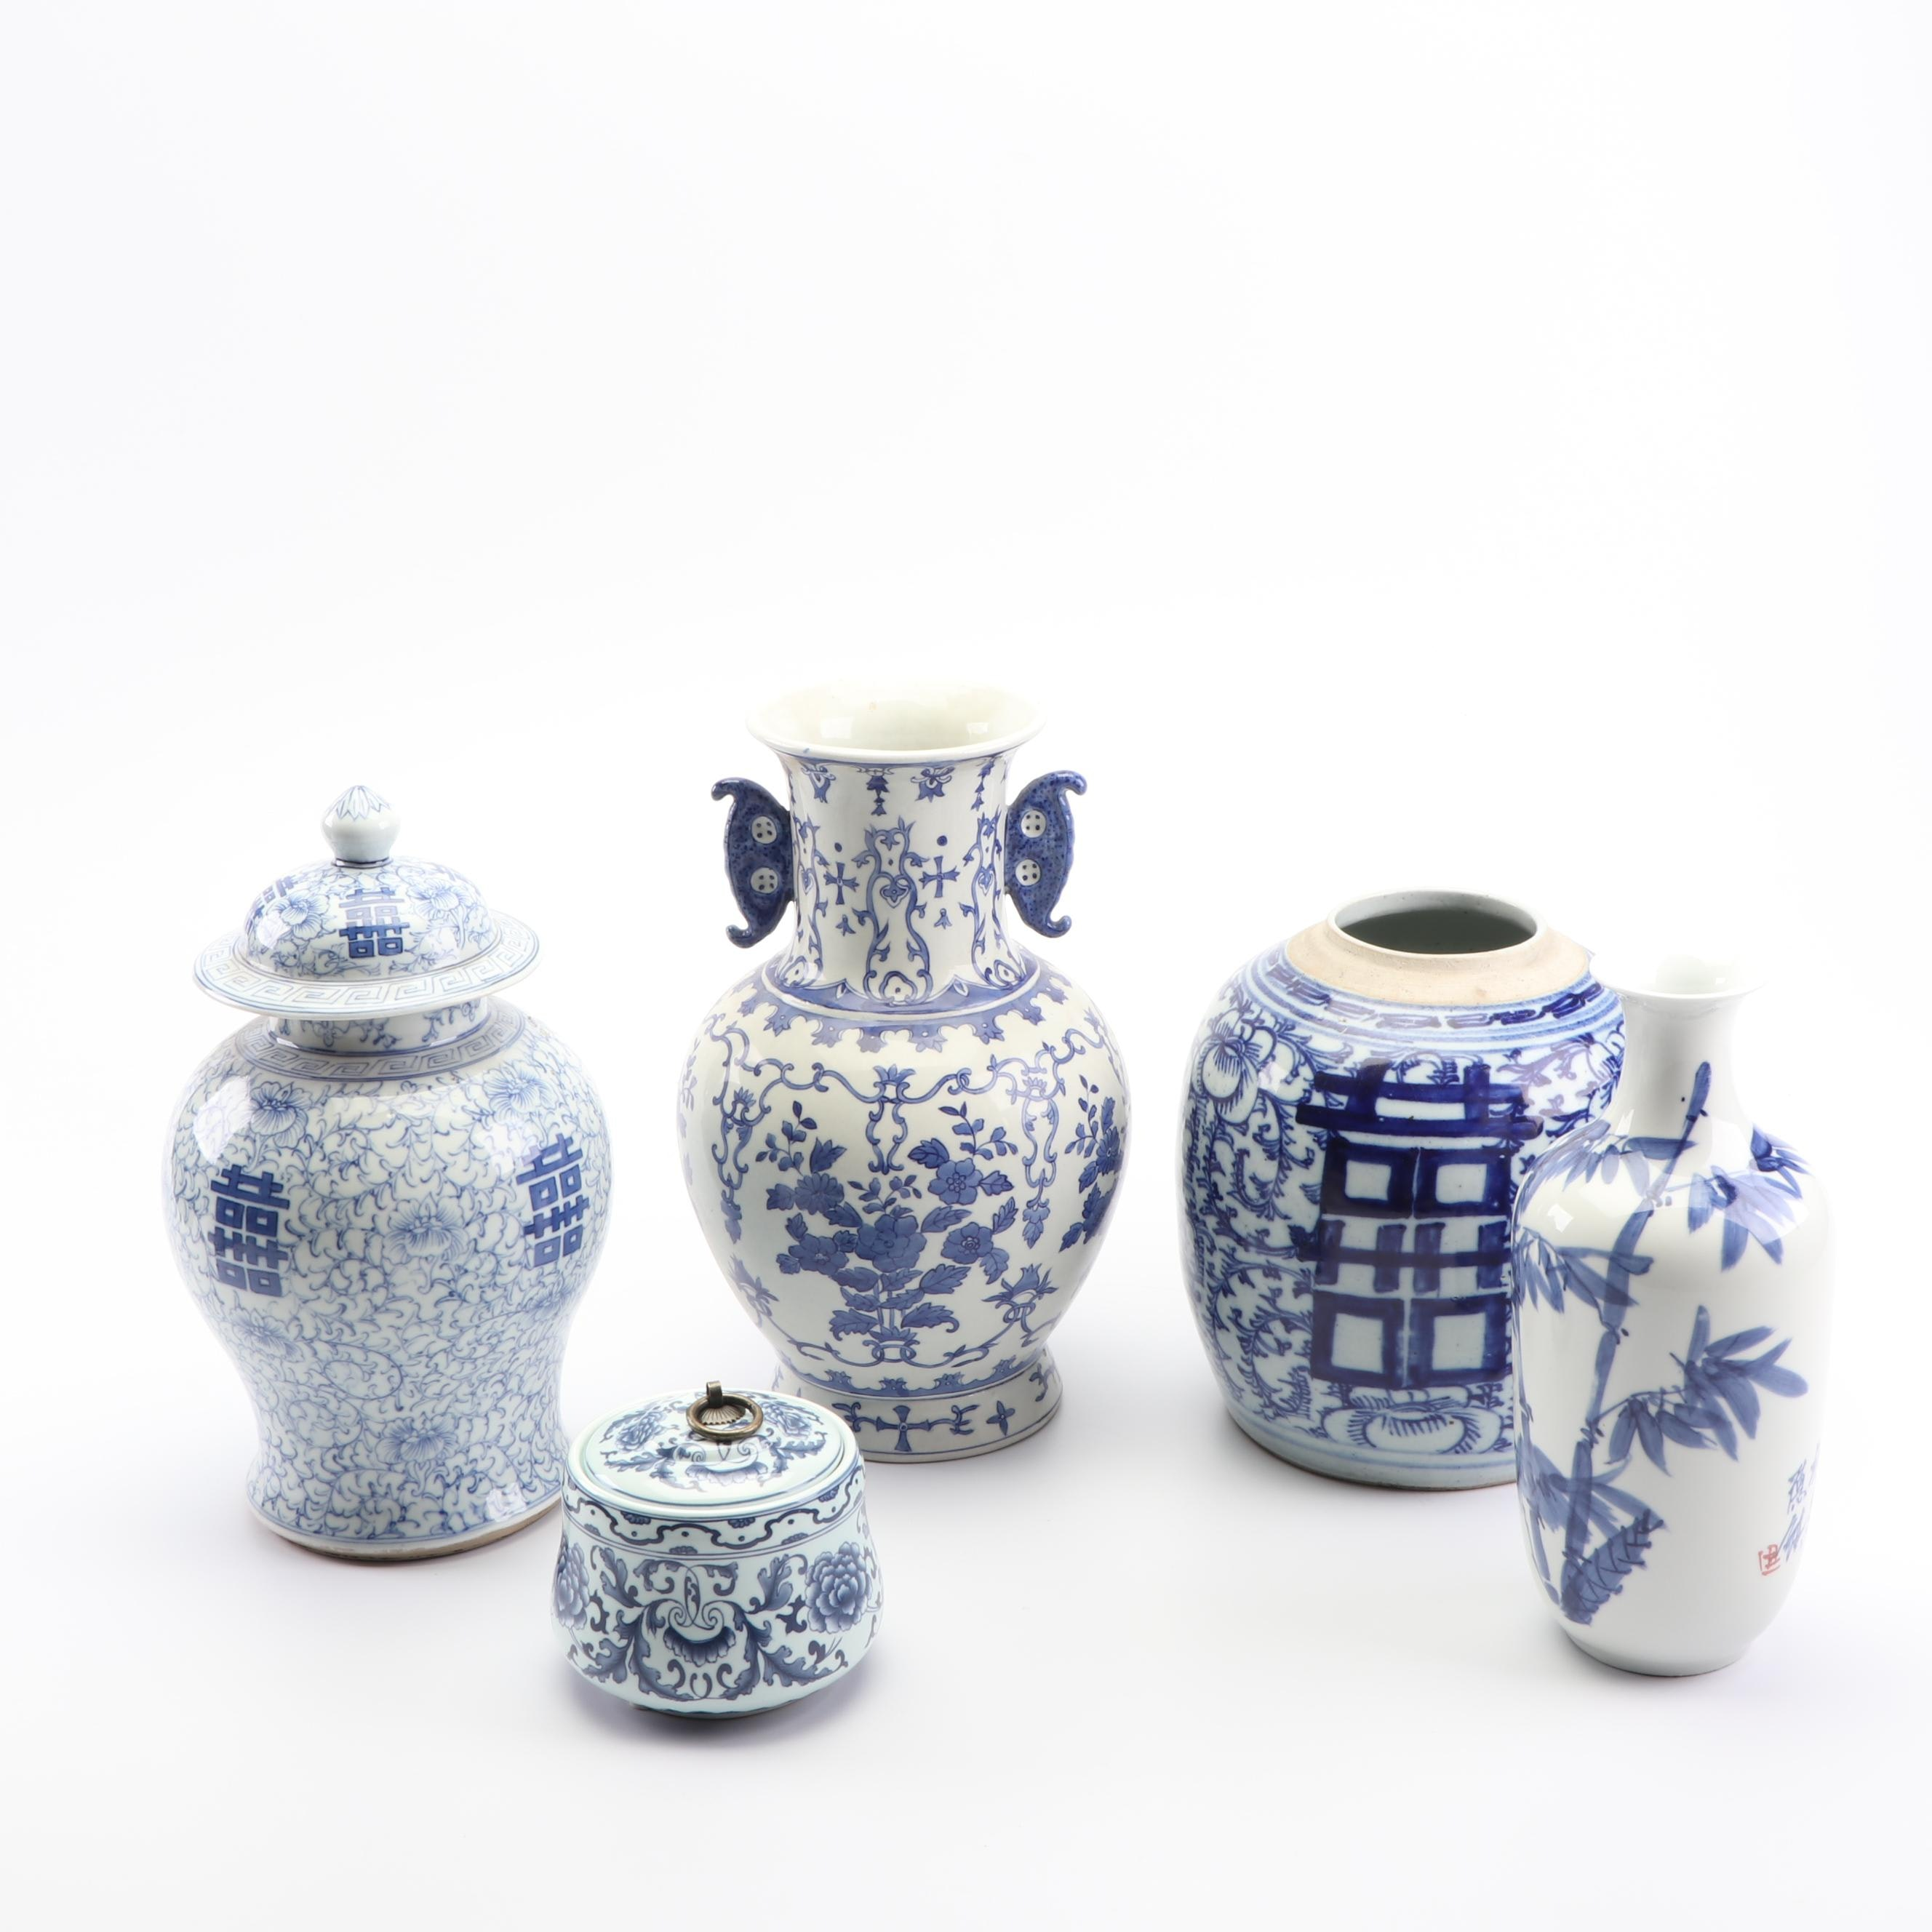 Chinese Blue and White Vases and Jars